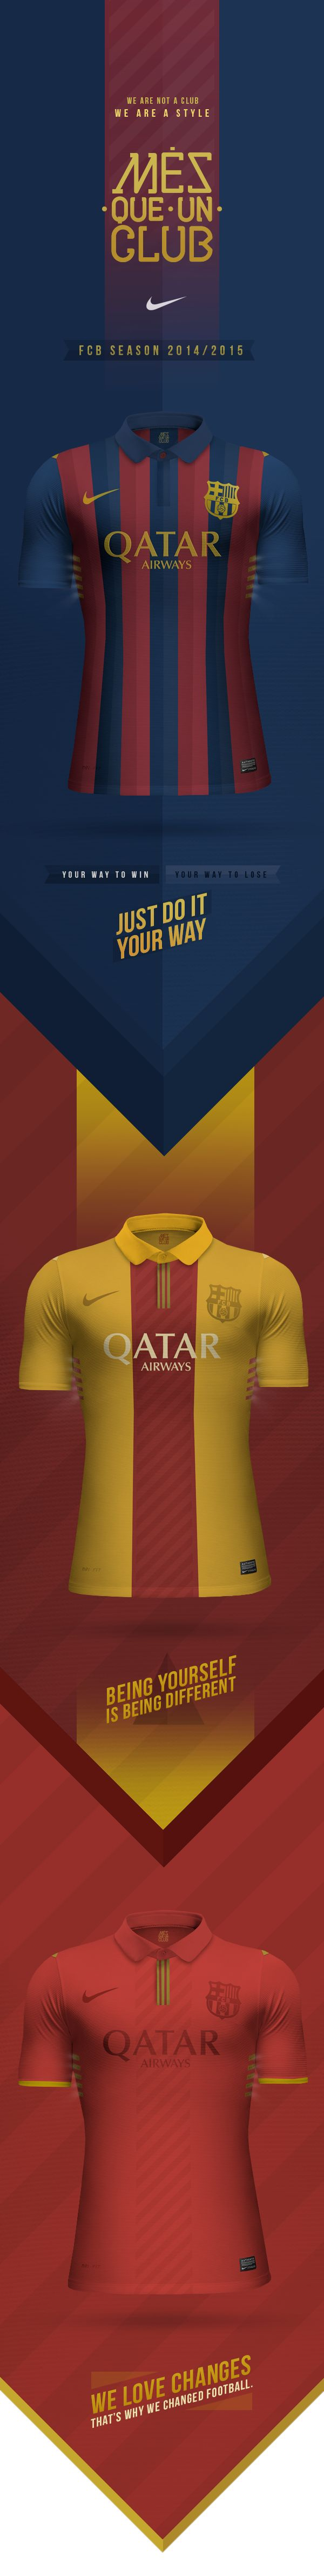 Barcelona FC - Concept on Behance